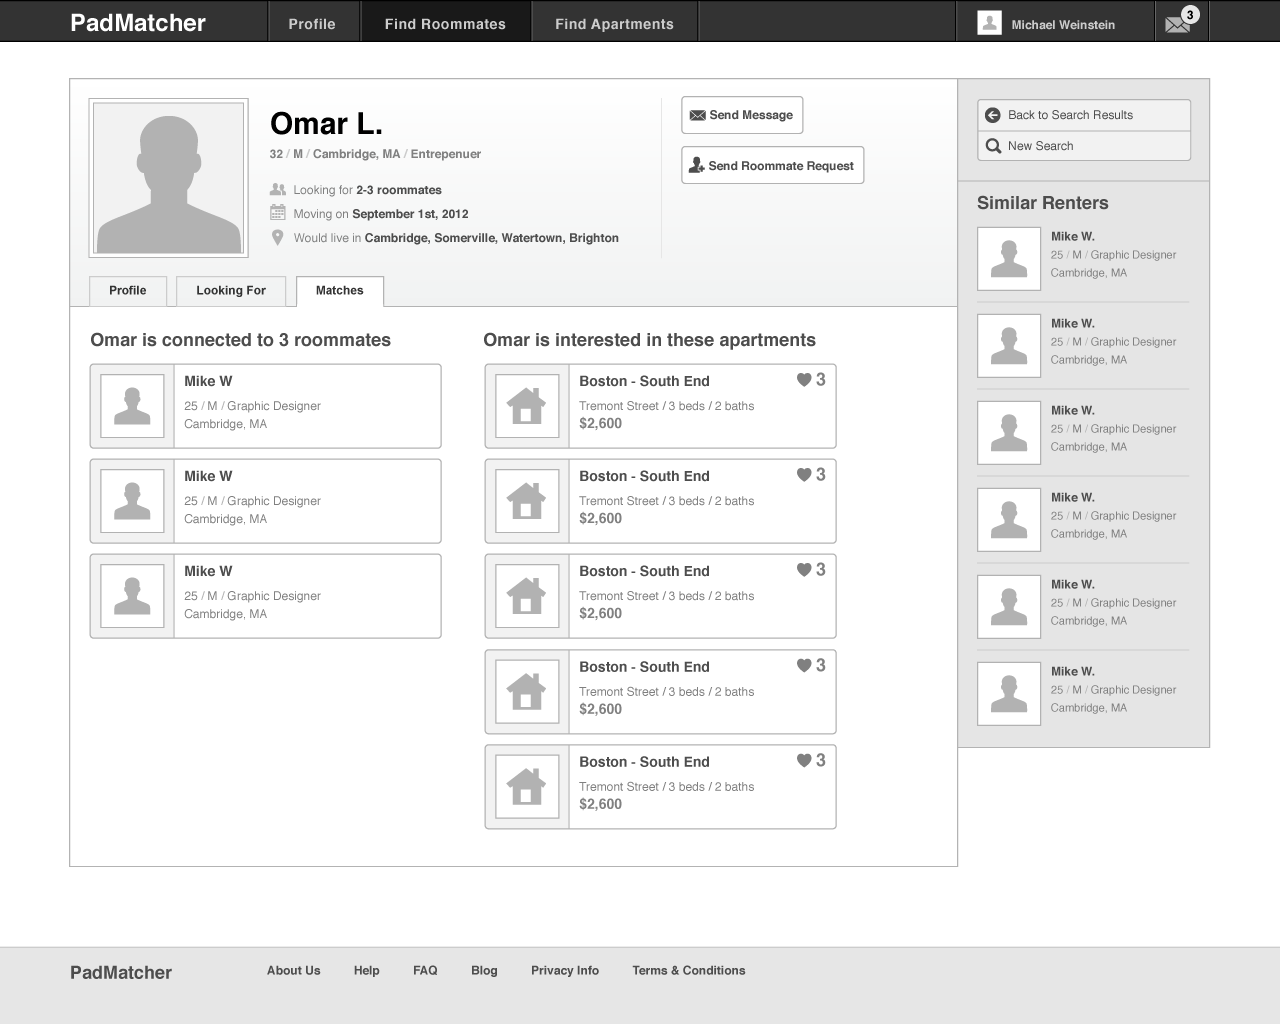 PadMatcher - wireframe - Roommate profile - Matches